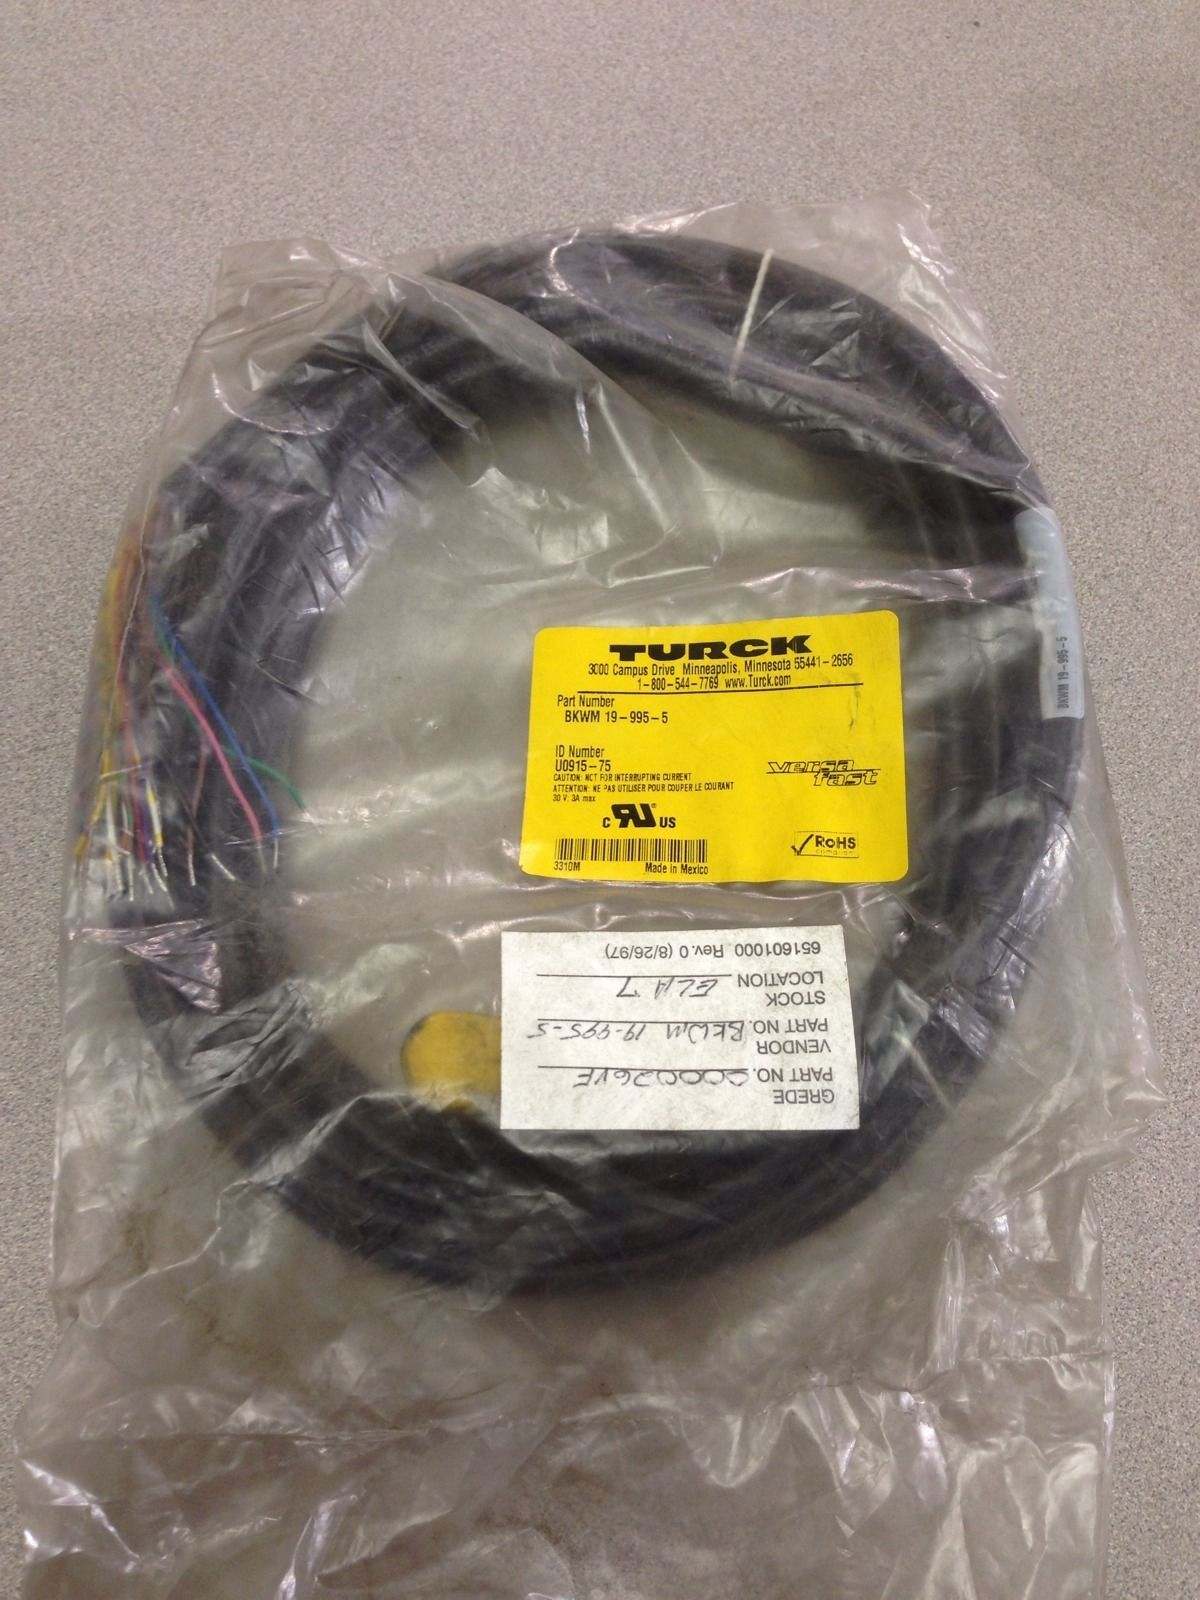 New In Bag Turck Versa Fast Cable Wire Bkwm and 46 similar items